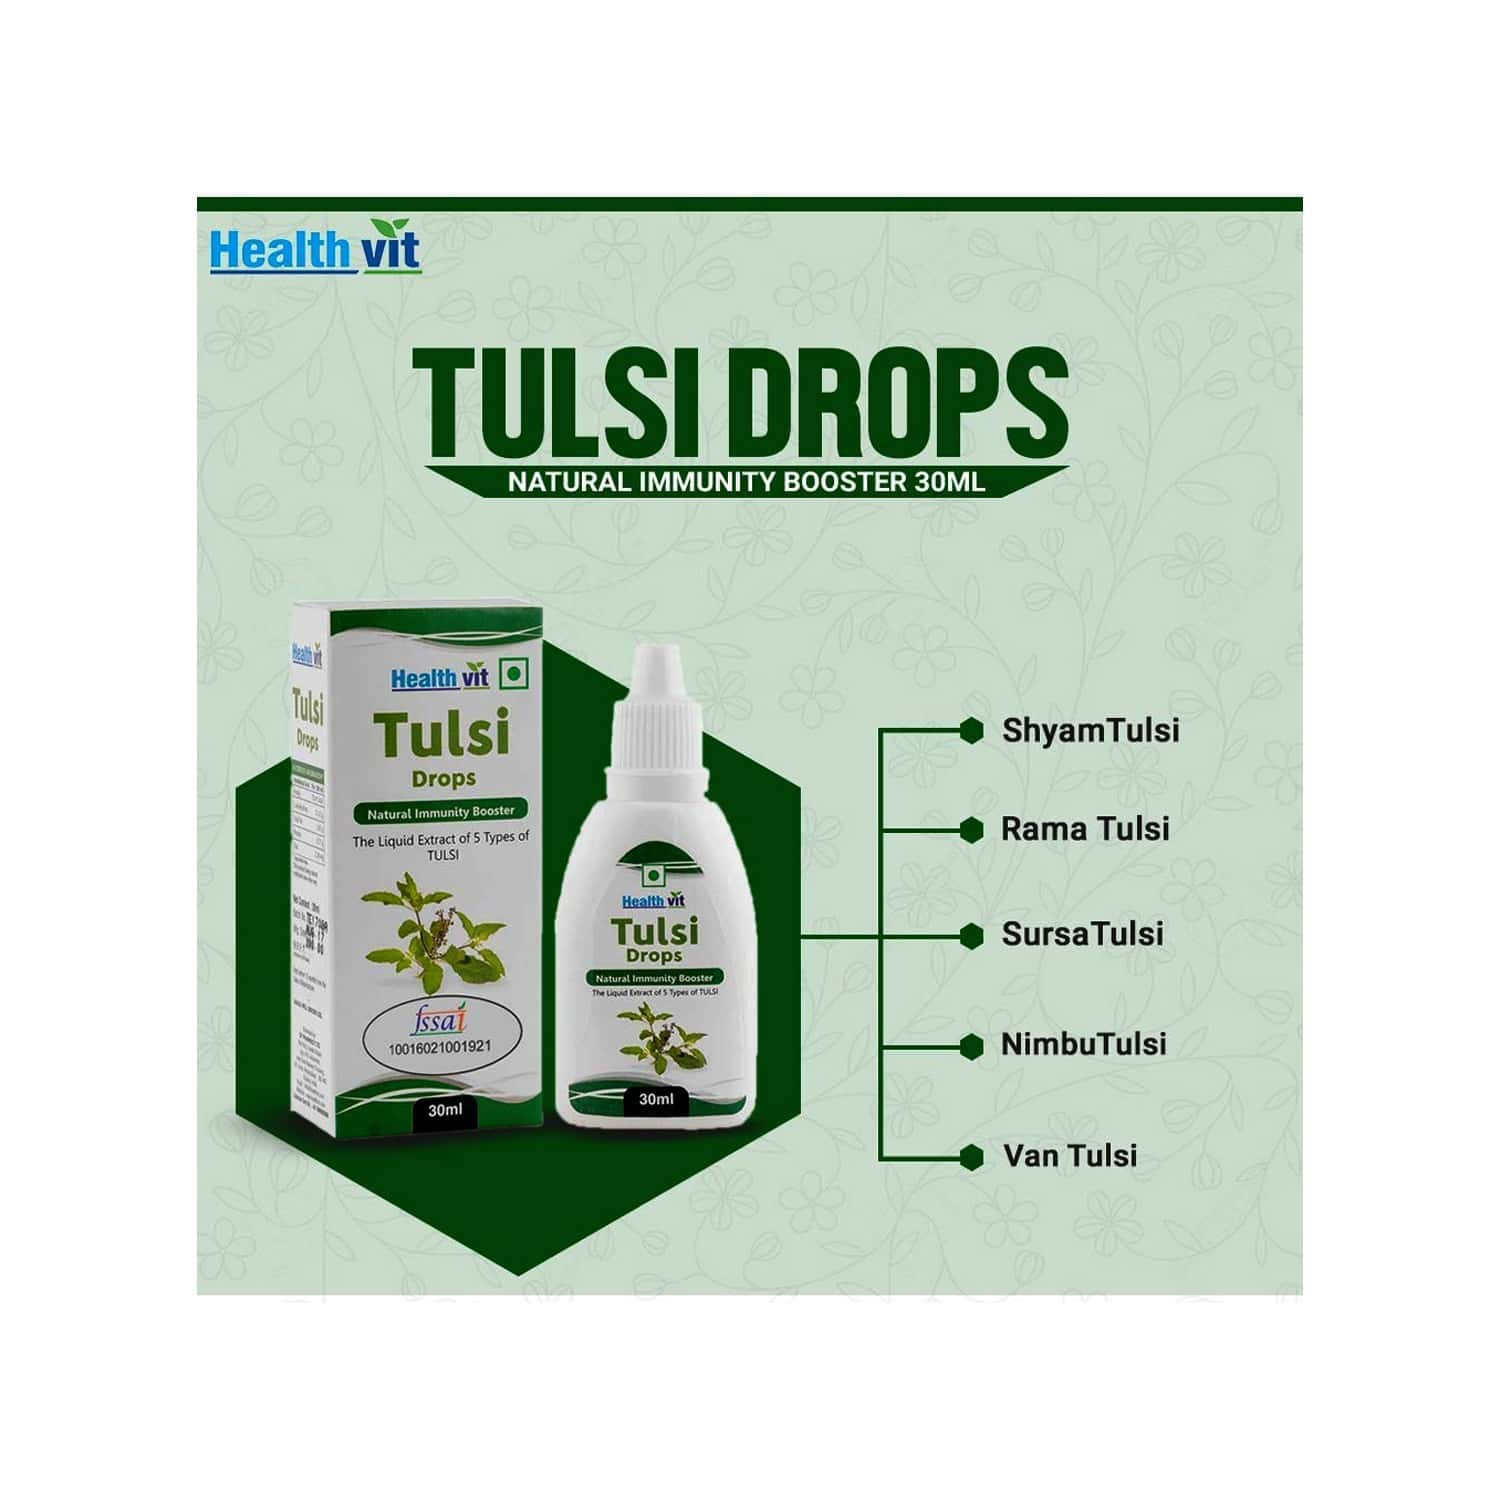 Healthvit Tulsi Drops- Concentrated Extract Of 5 Rare Tulsi For Natural Immunity Boosting & Cough And Cold Relief - 30ml